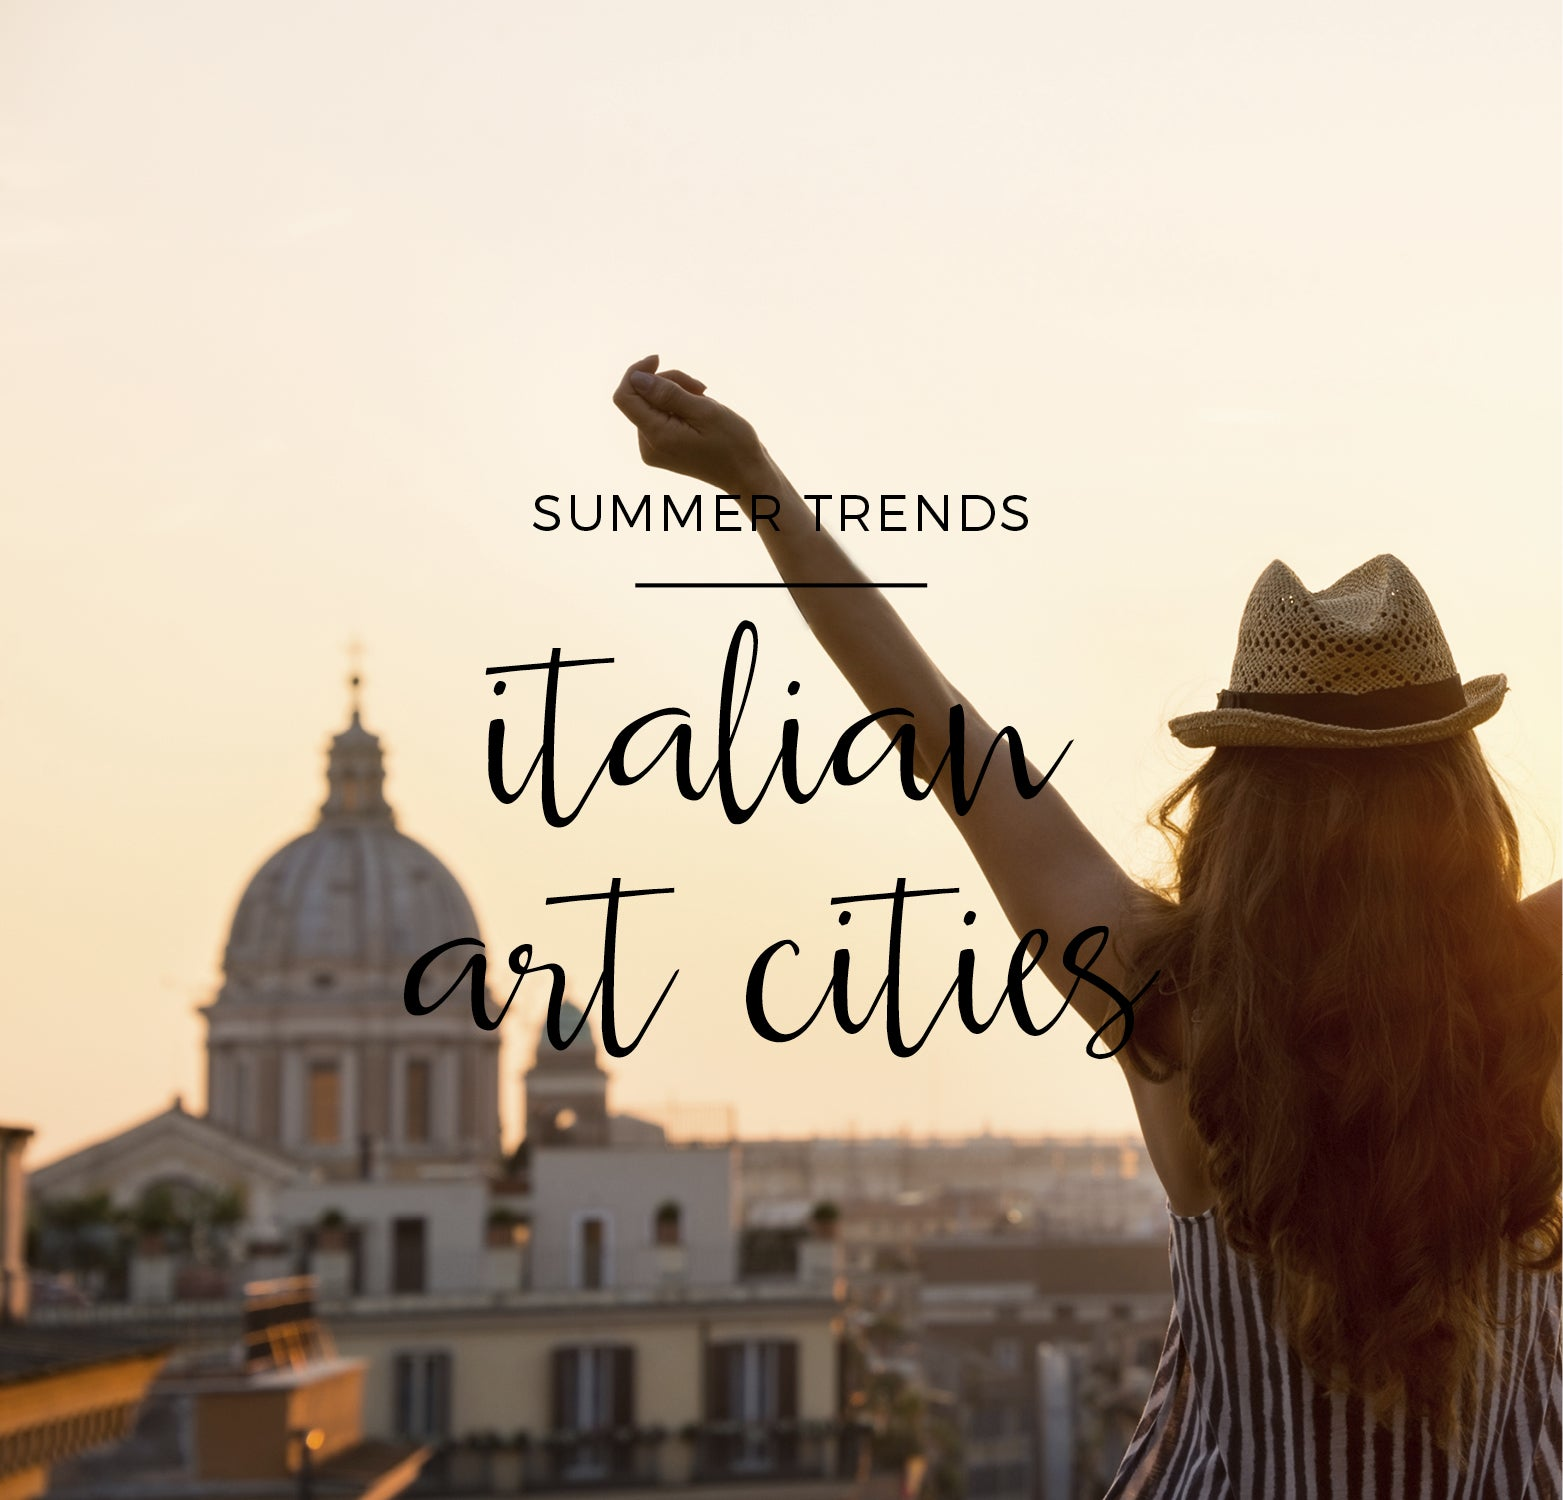 The 3 most beloved Italian cities of all time: Florence, Rome, Venice